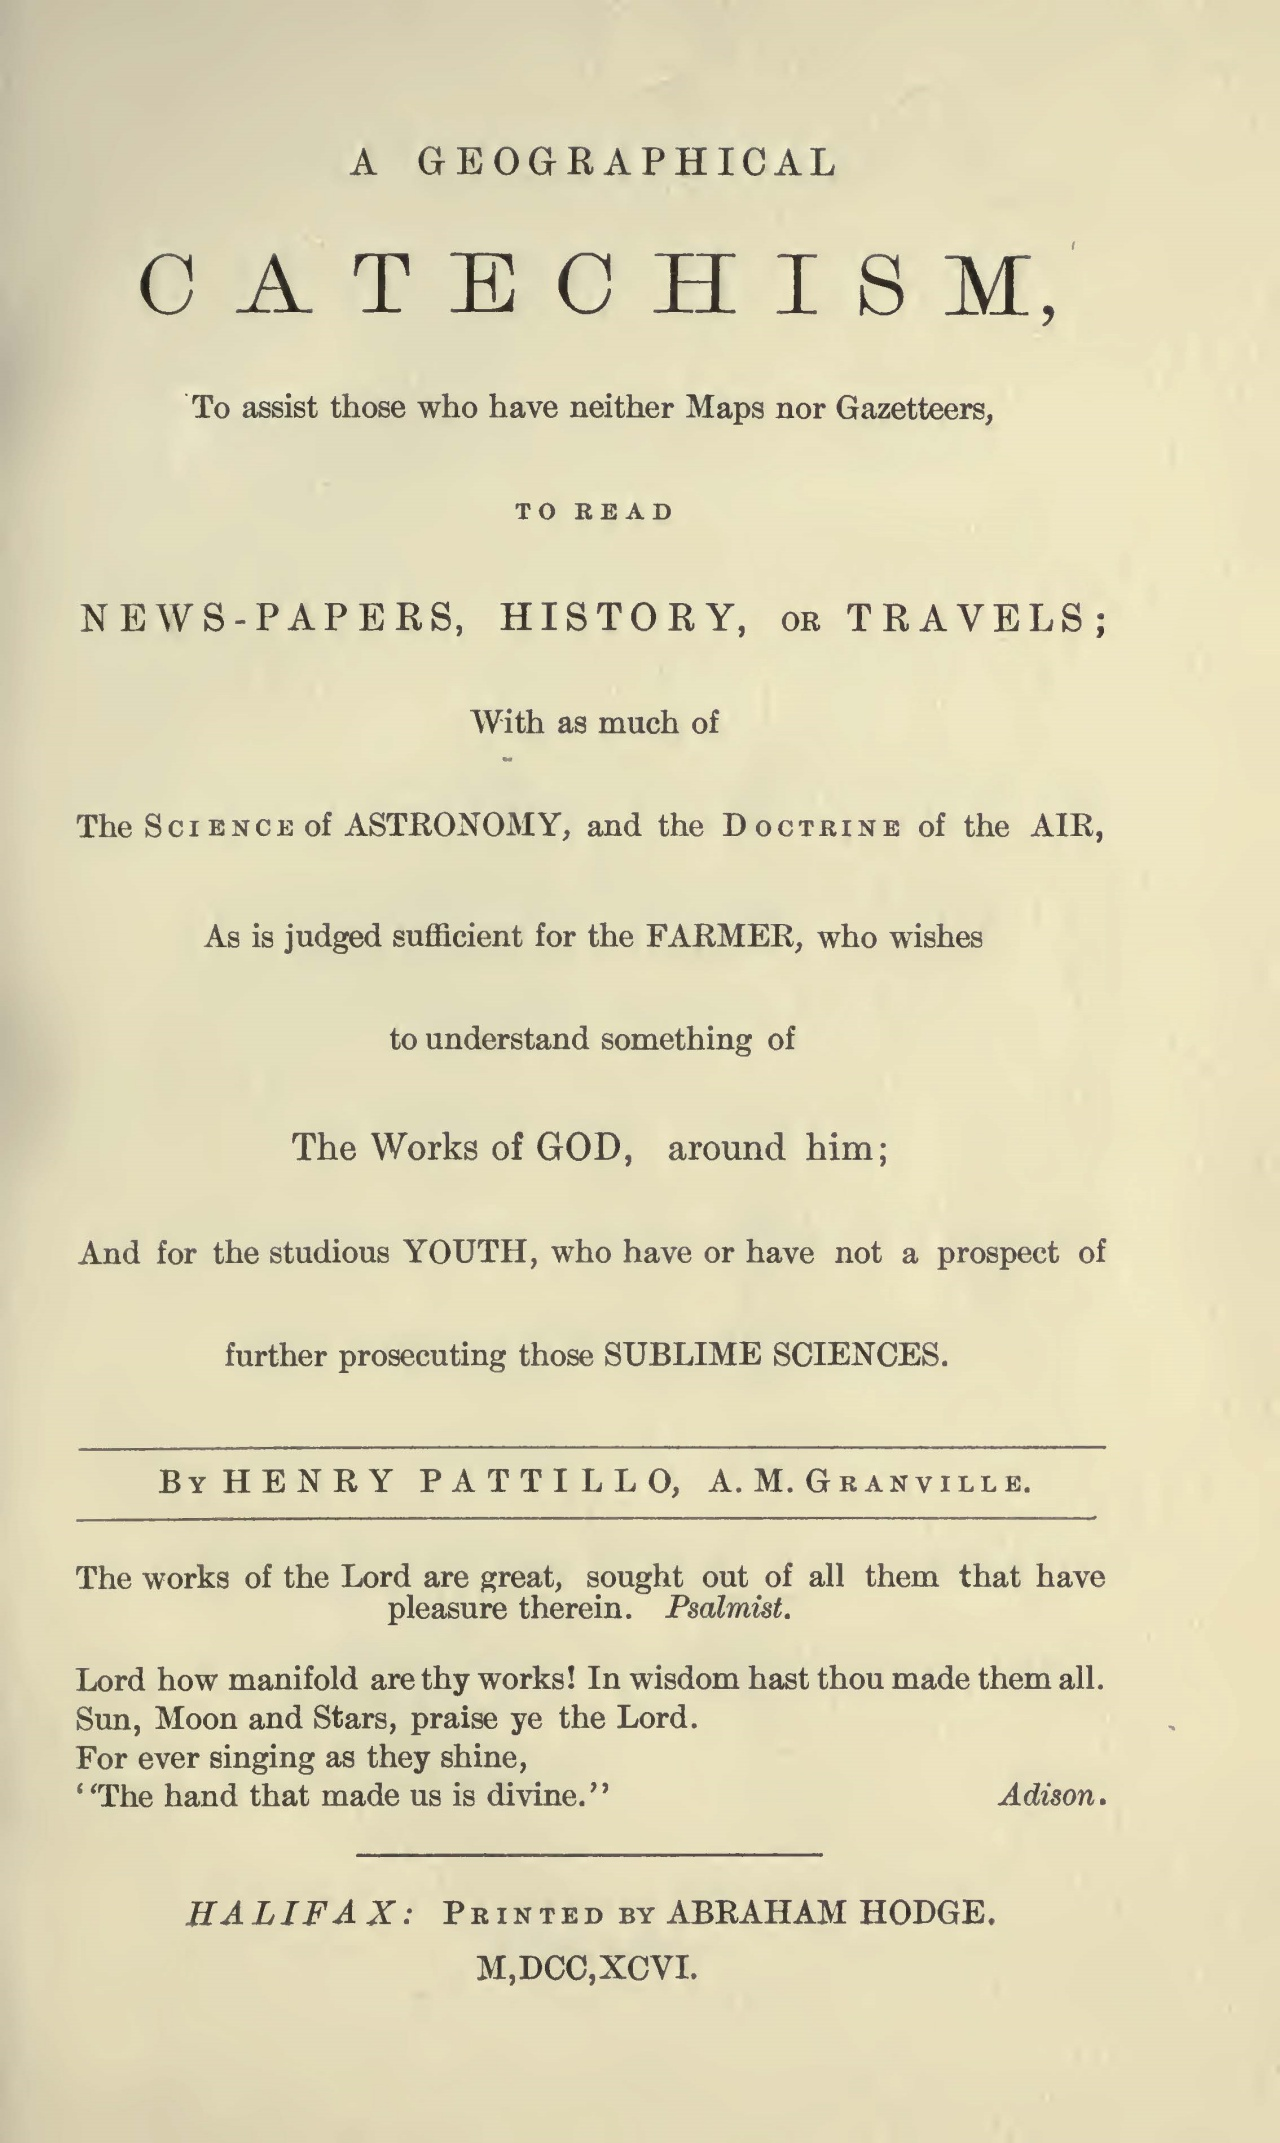 Pattillo, Henry, A Geographical Catechism Title Page.jpg